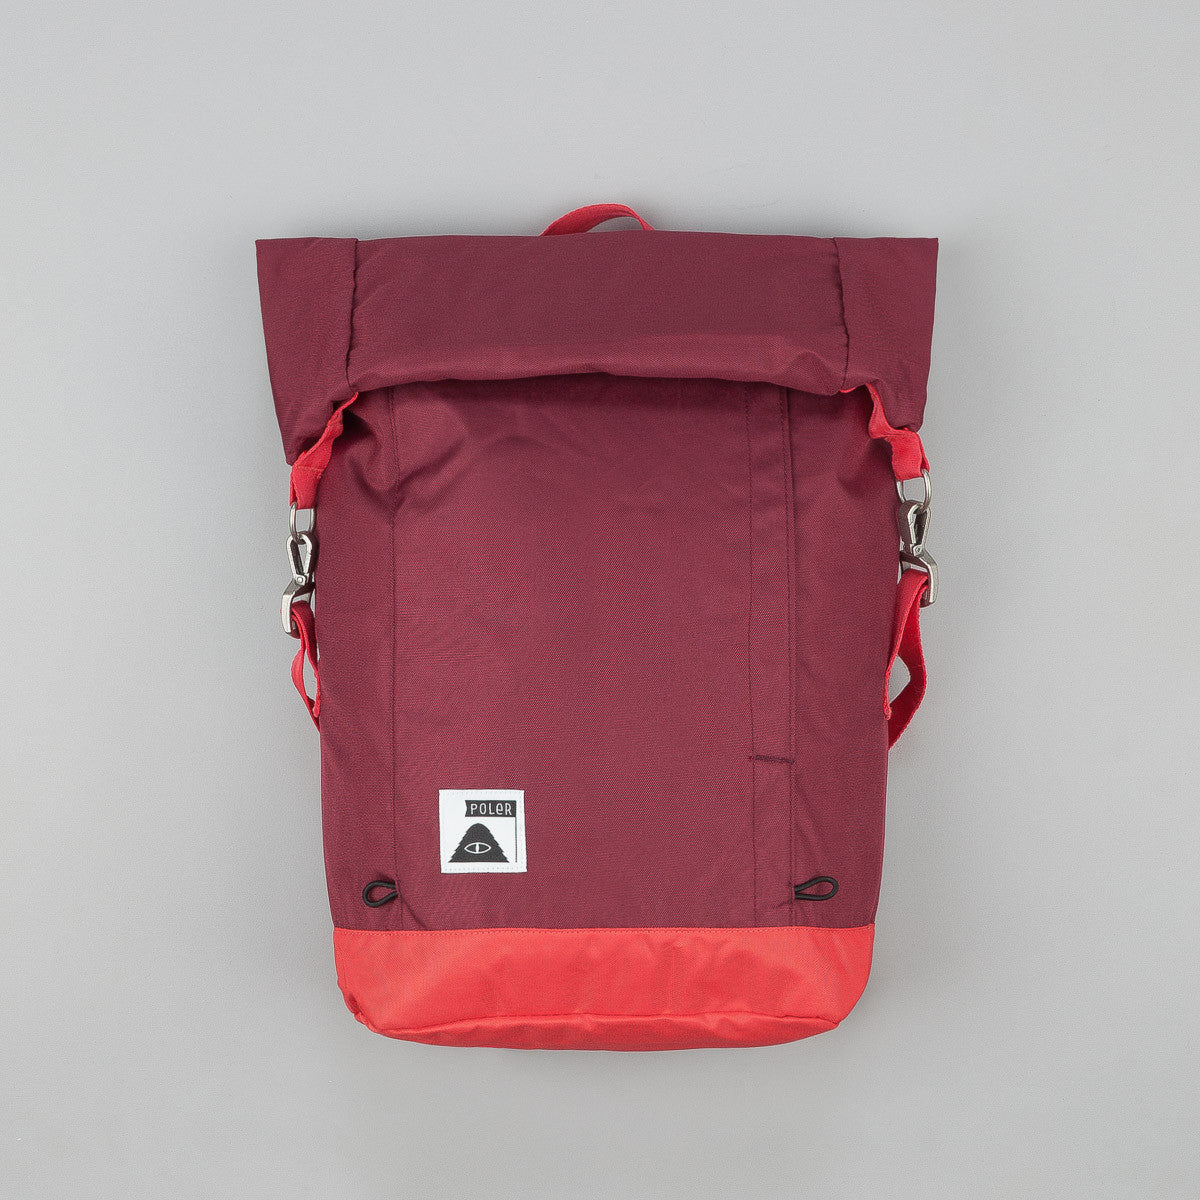 Poler Rolltop 2.0 Backpack